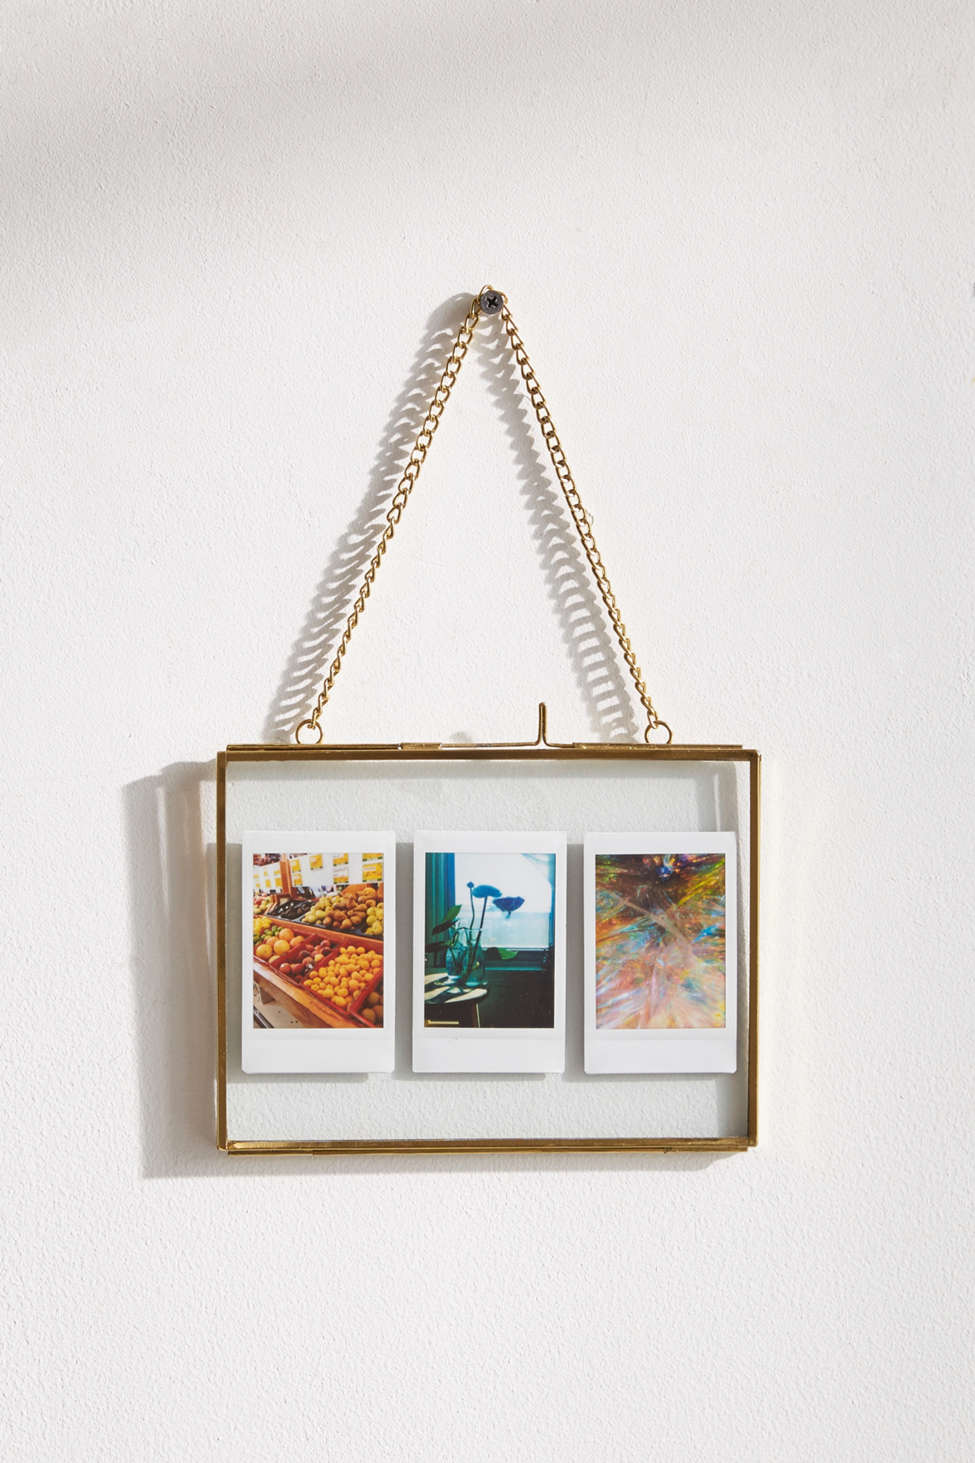 Hanging Glass Display Frame 5x7 Urban Outfitters Canada